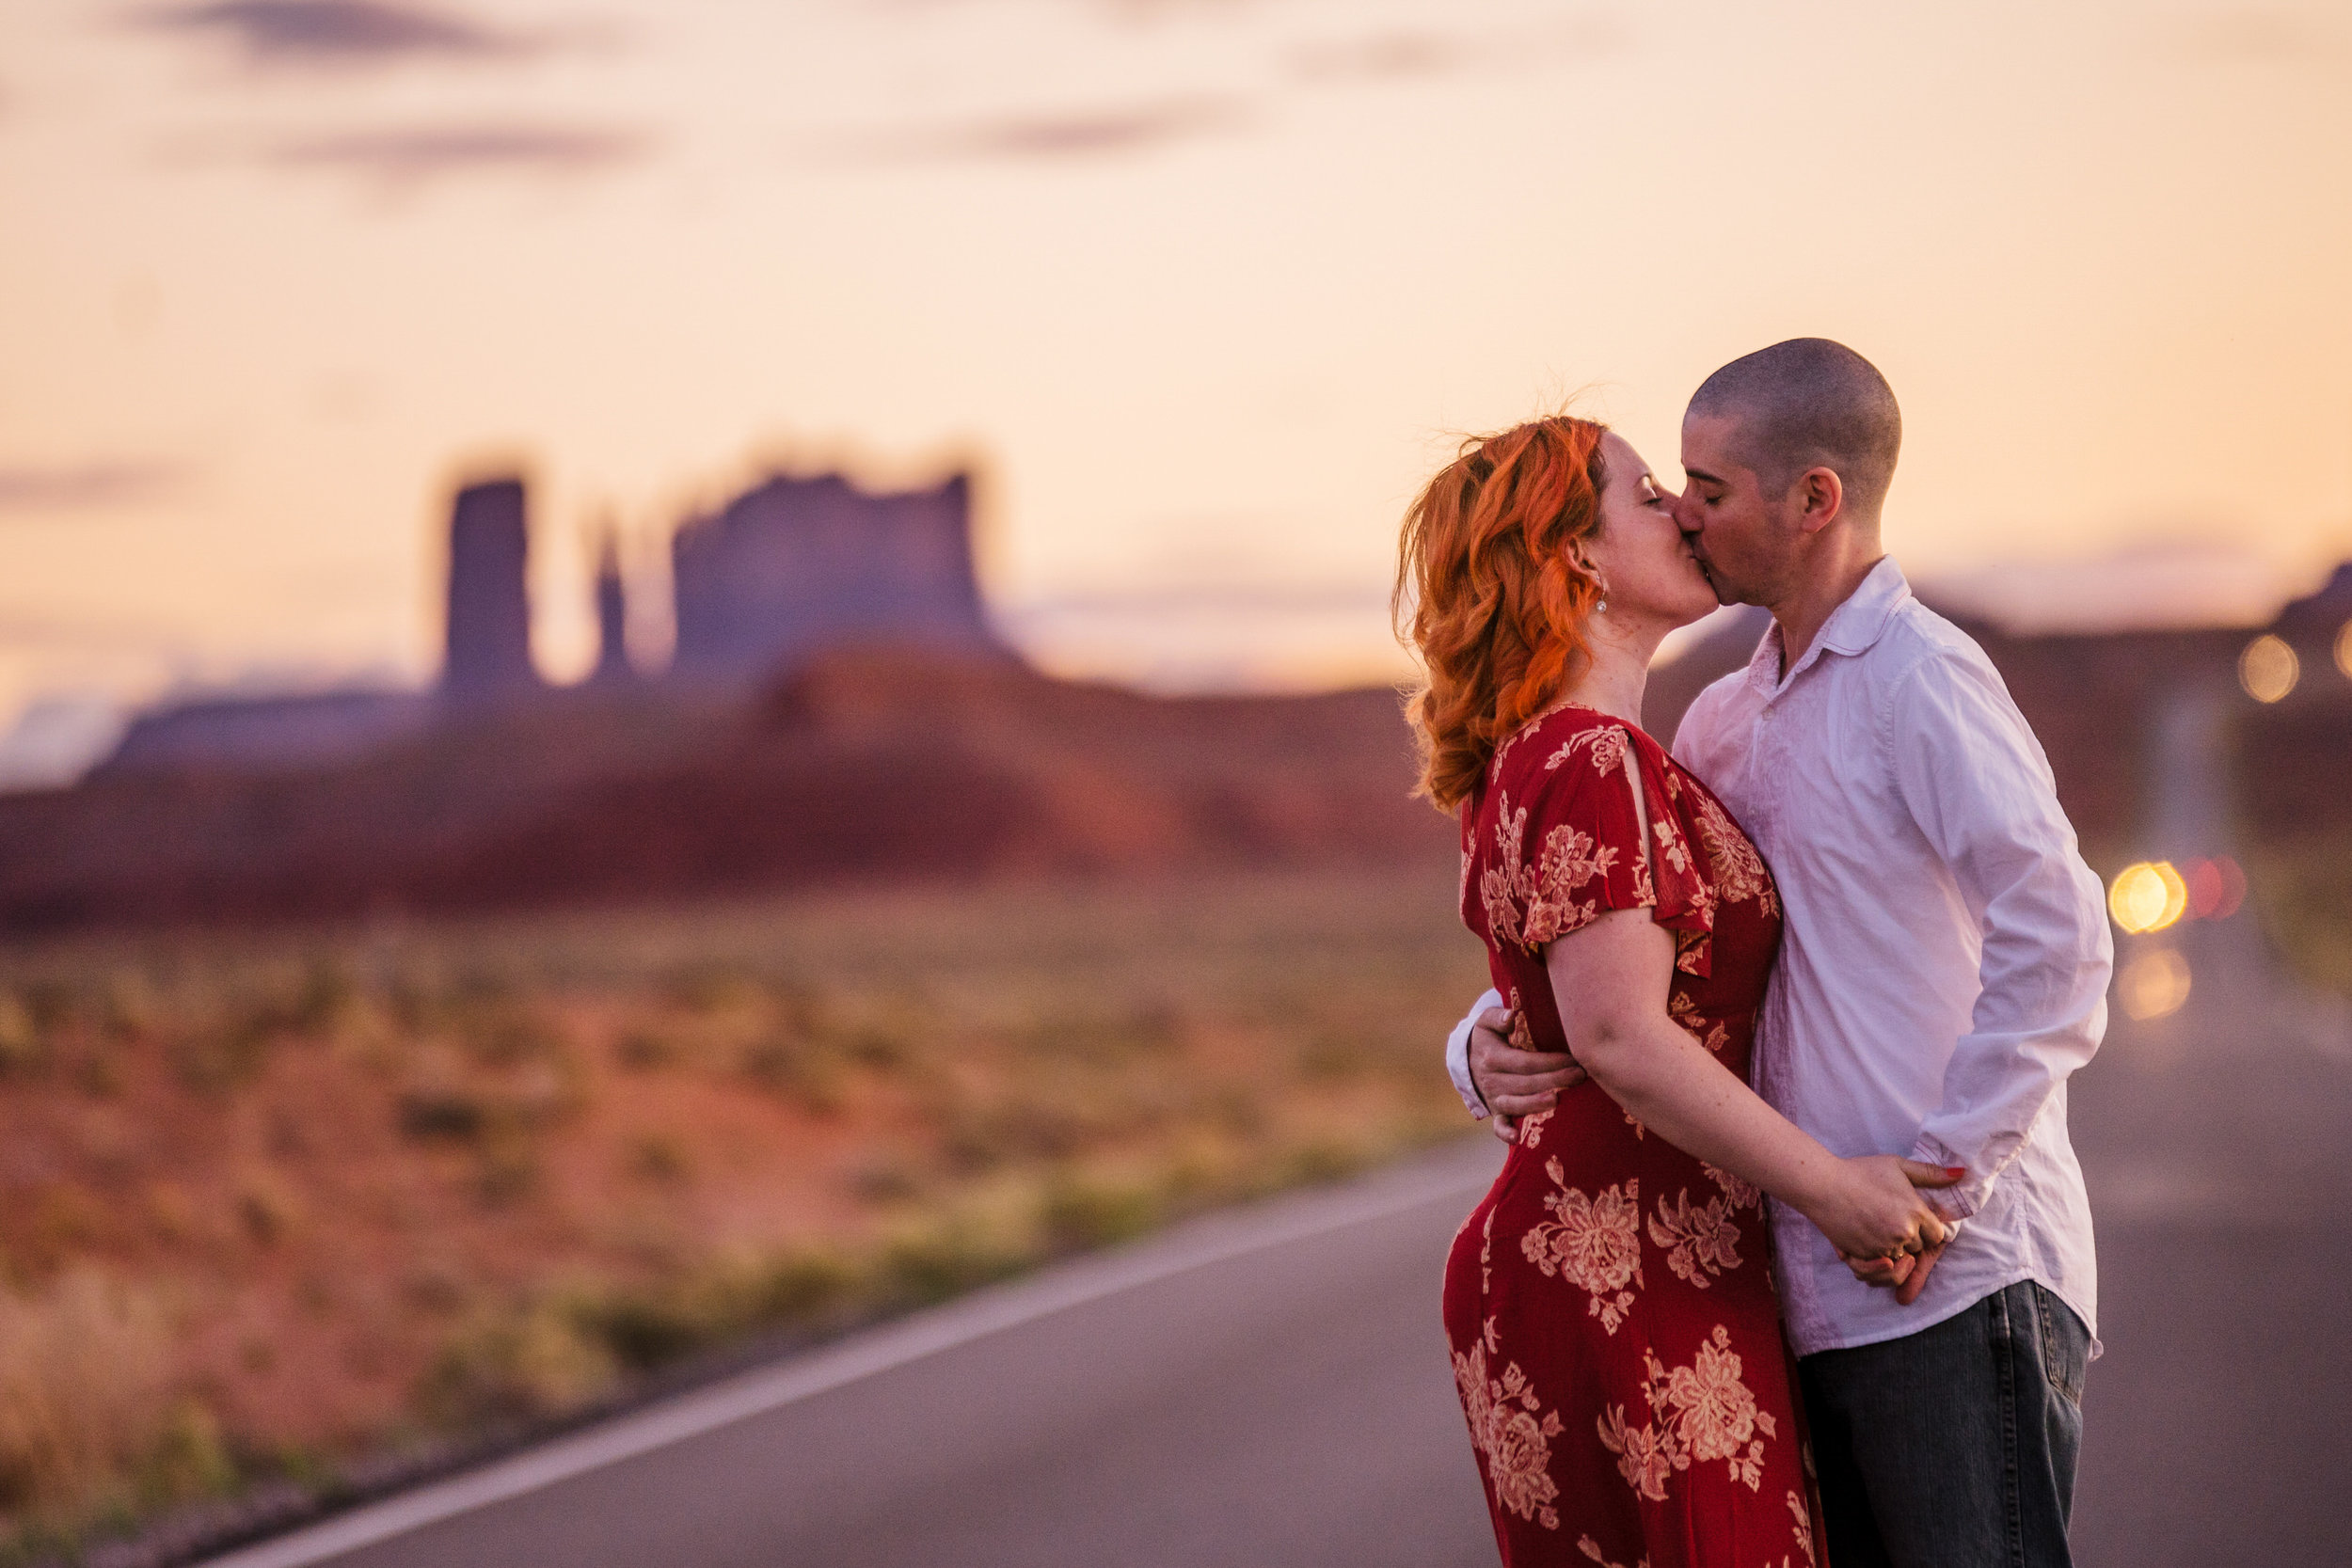 MonumentValleyEngagement-Alicia&Rob-0101.jpg